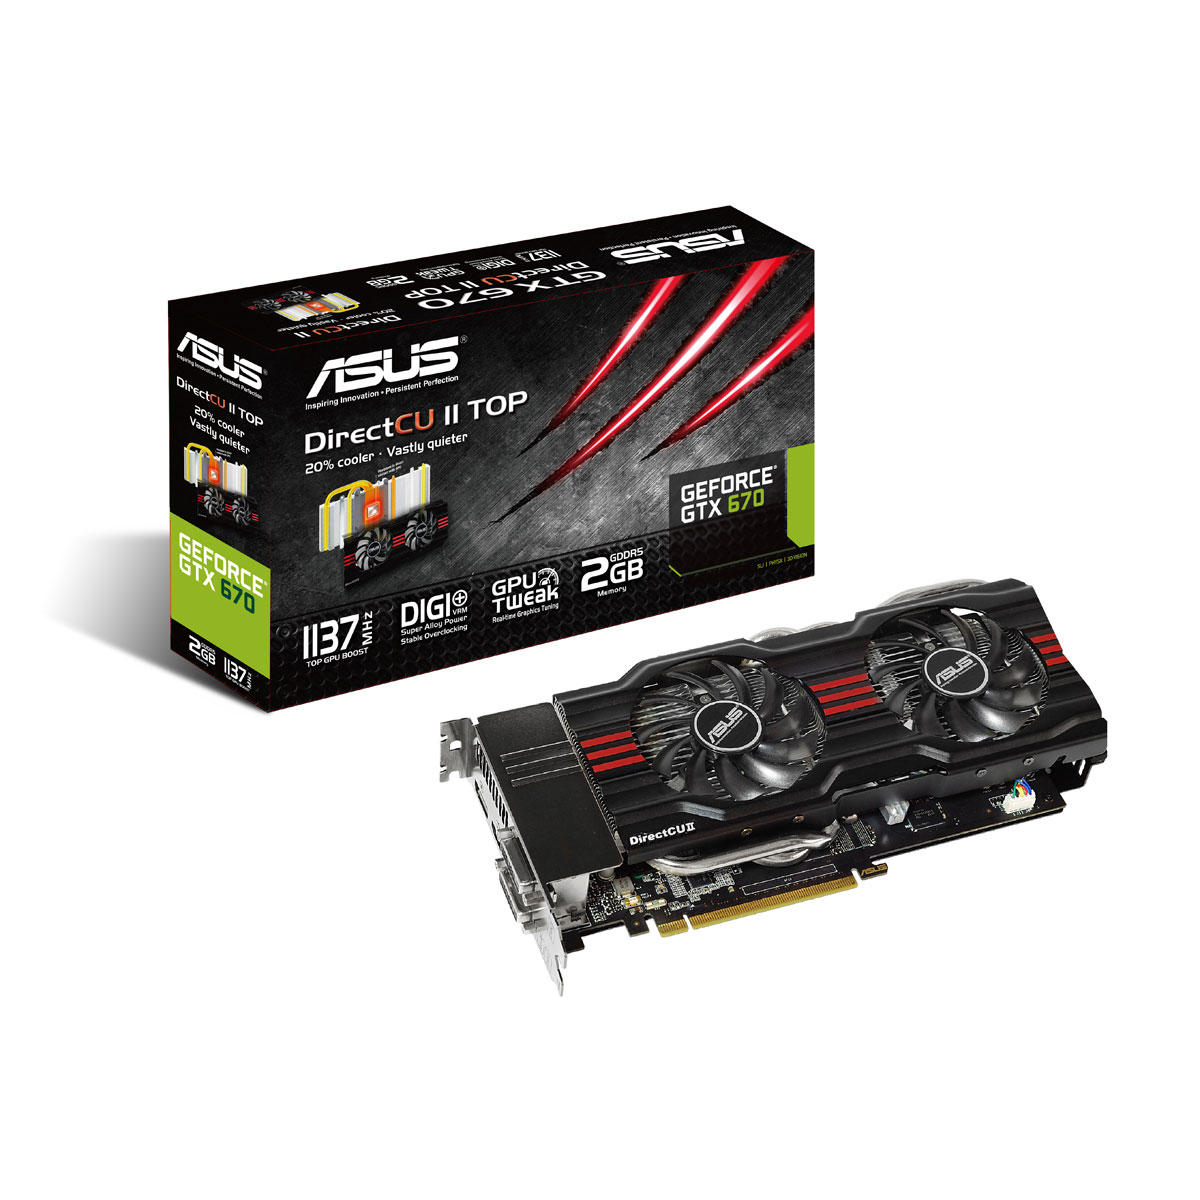 asus gtx670 dc2t 2gd5 2 gb carte graphique asus sur. Black Bedroom Furniture Sets. Home Design Ideas